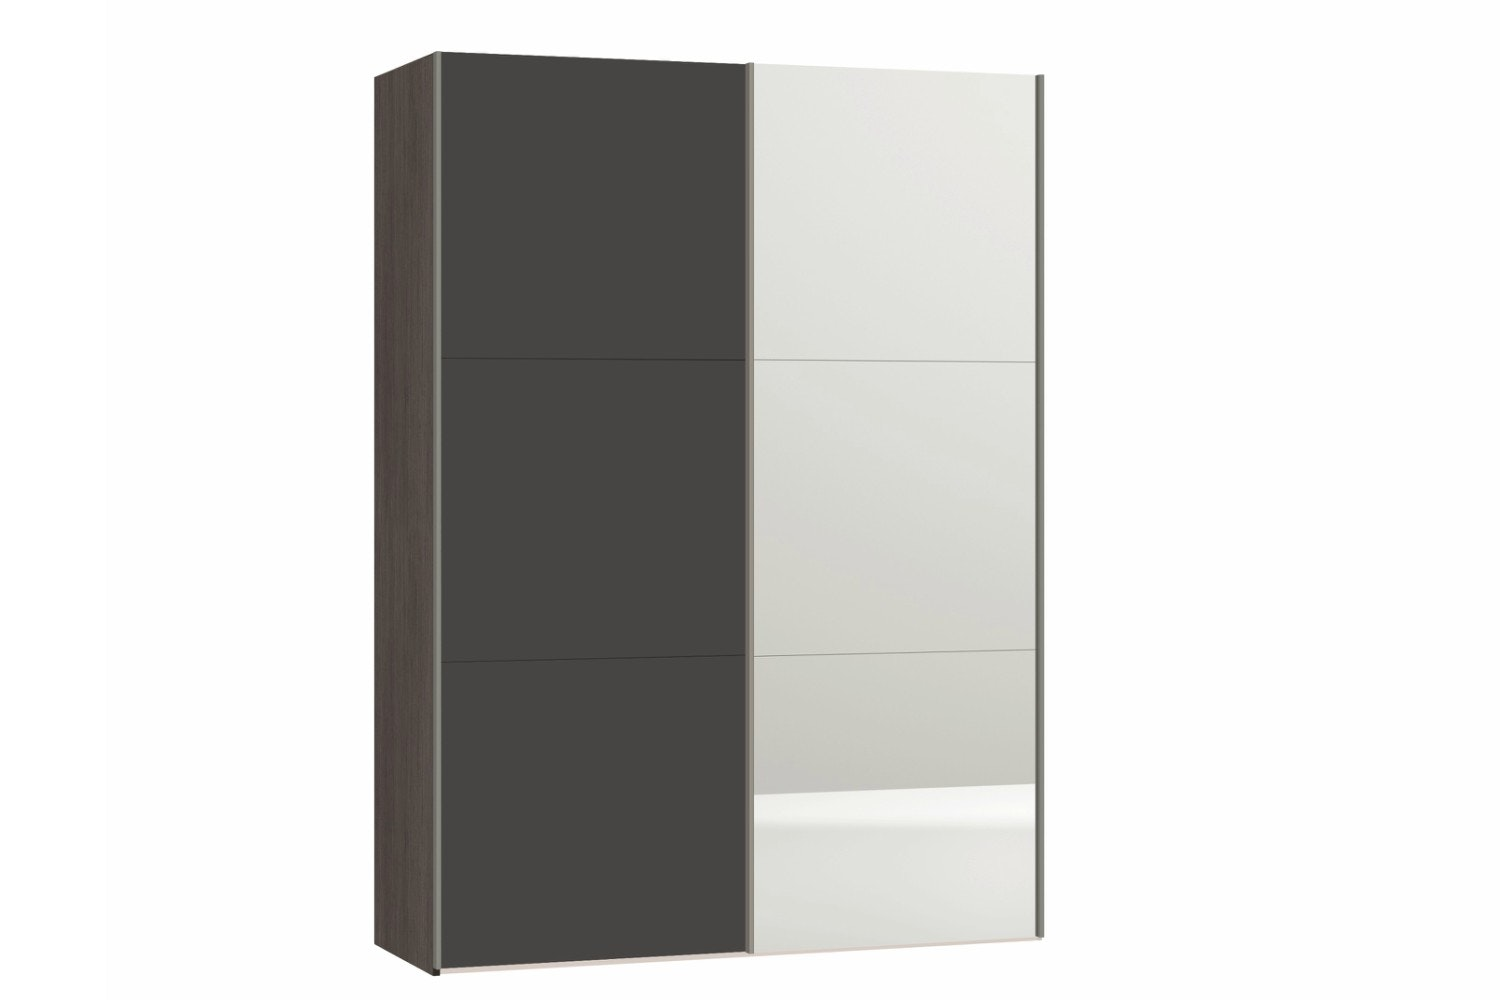 Zermatt Wardrobe 1.5M | Grey Matt & Mirror